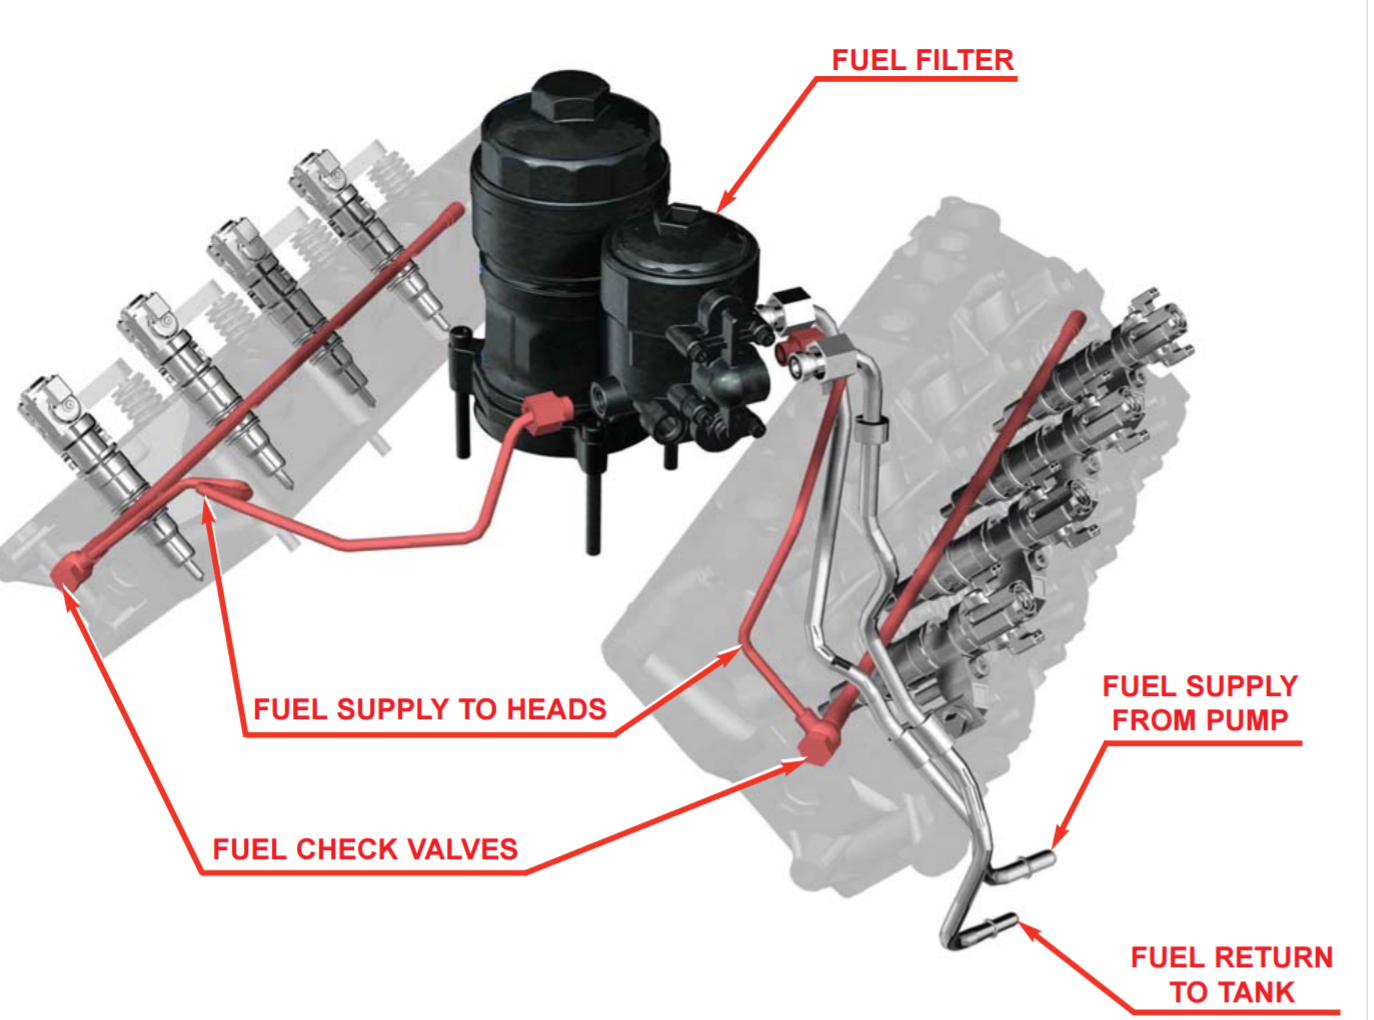 ford 6.0 fuel system diagram - wiring diagram name pose-normal -  pose-normal.agirepoliticamente.it  agire politicamente